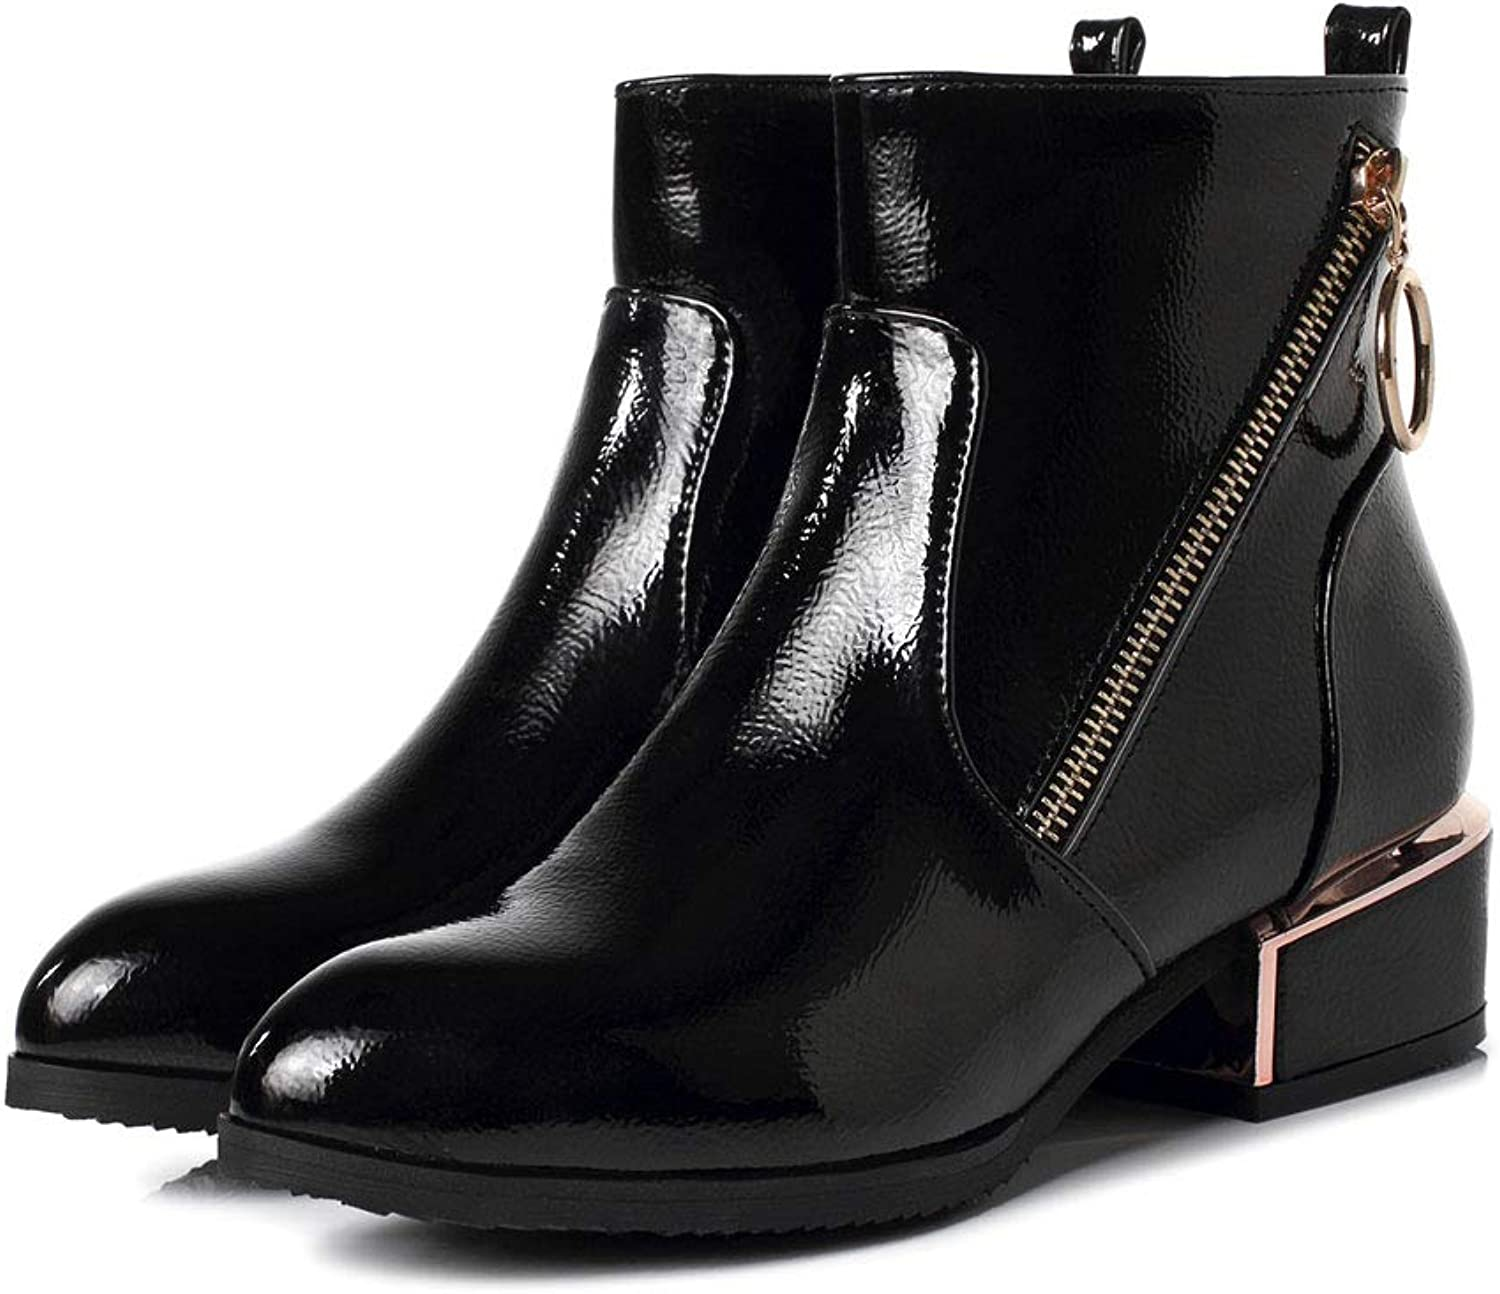 Women's Patent Leather Ankle Boots, Comfortable Mid Heel Ankle Boots Side Zipper Low Tube Martin Boots Waterproof Platform Non-Slip Wearable Knight Boots